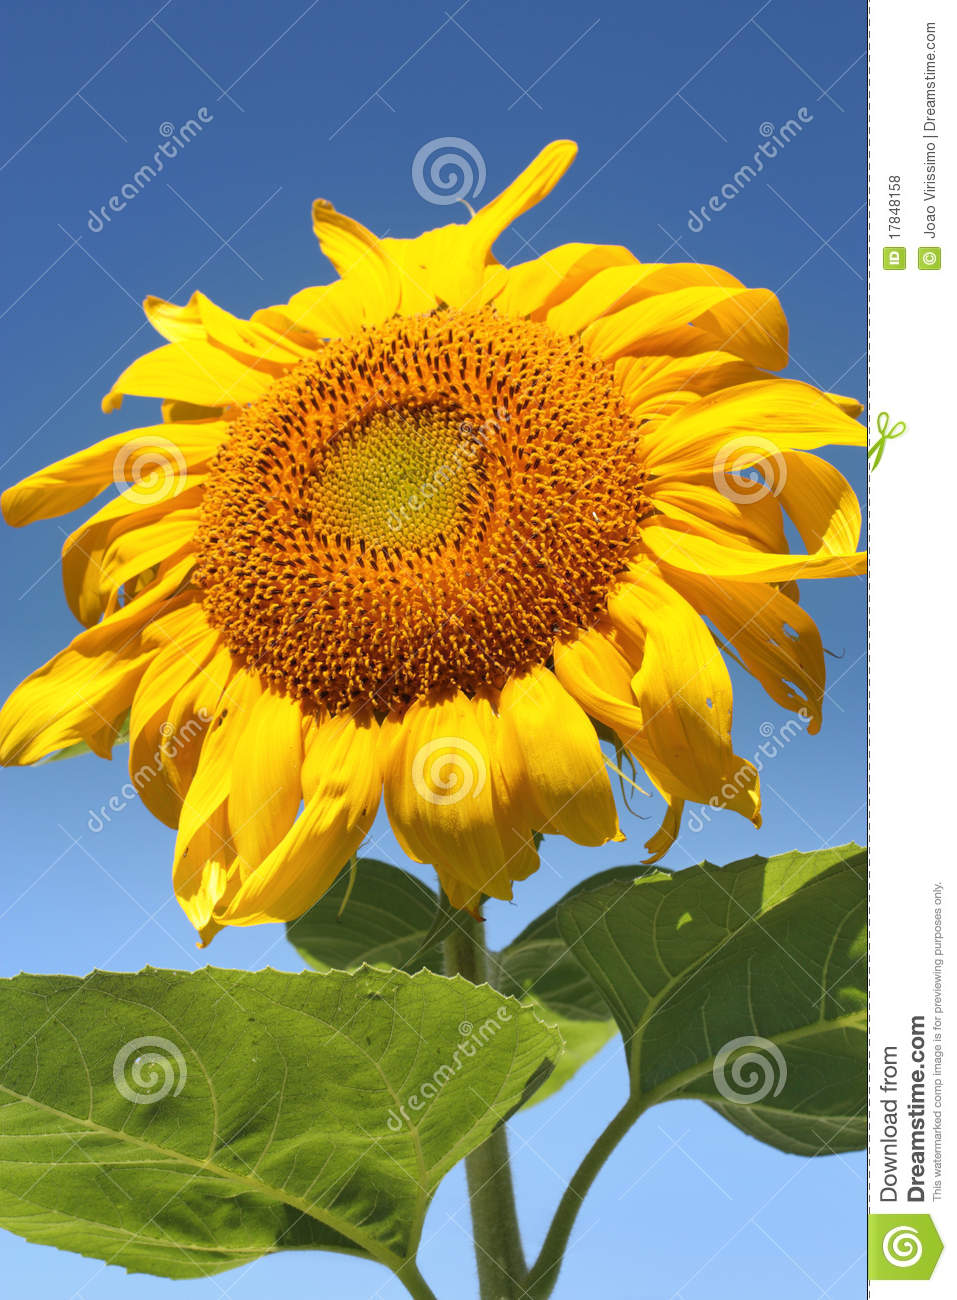 Sunflower on a sunny summer day